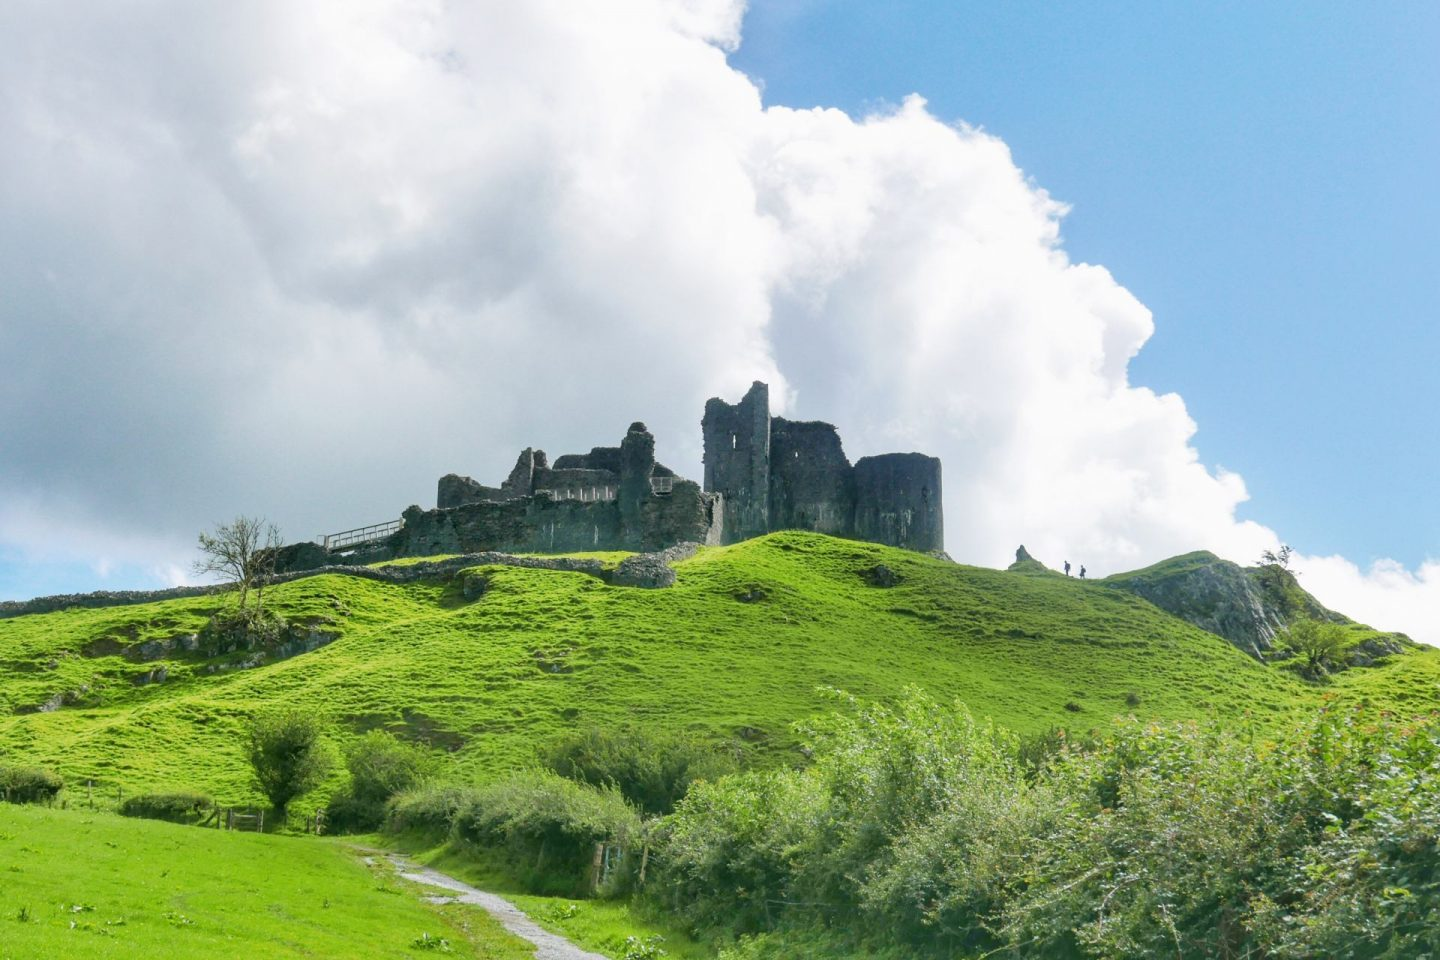 Cerreg Cennen castle in Wales sitting on a steep green slope